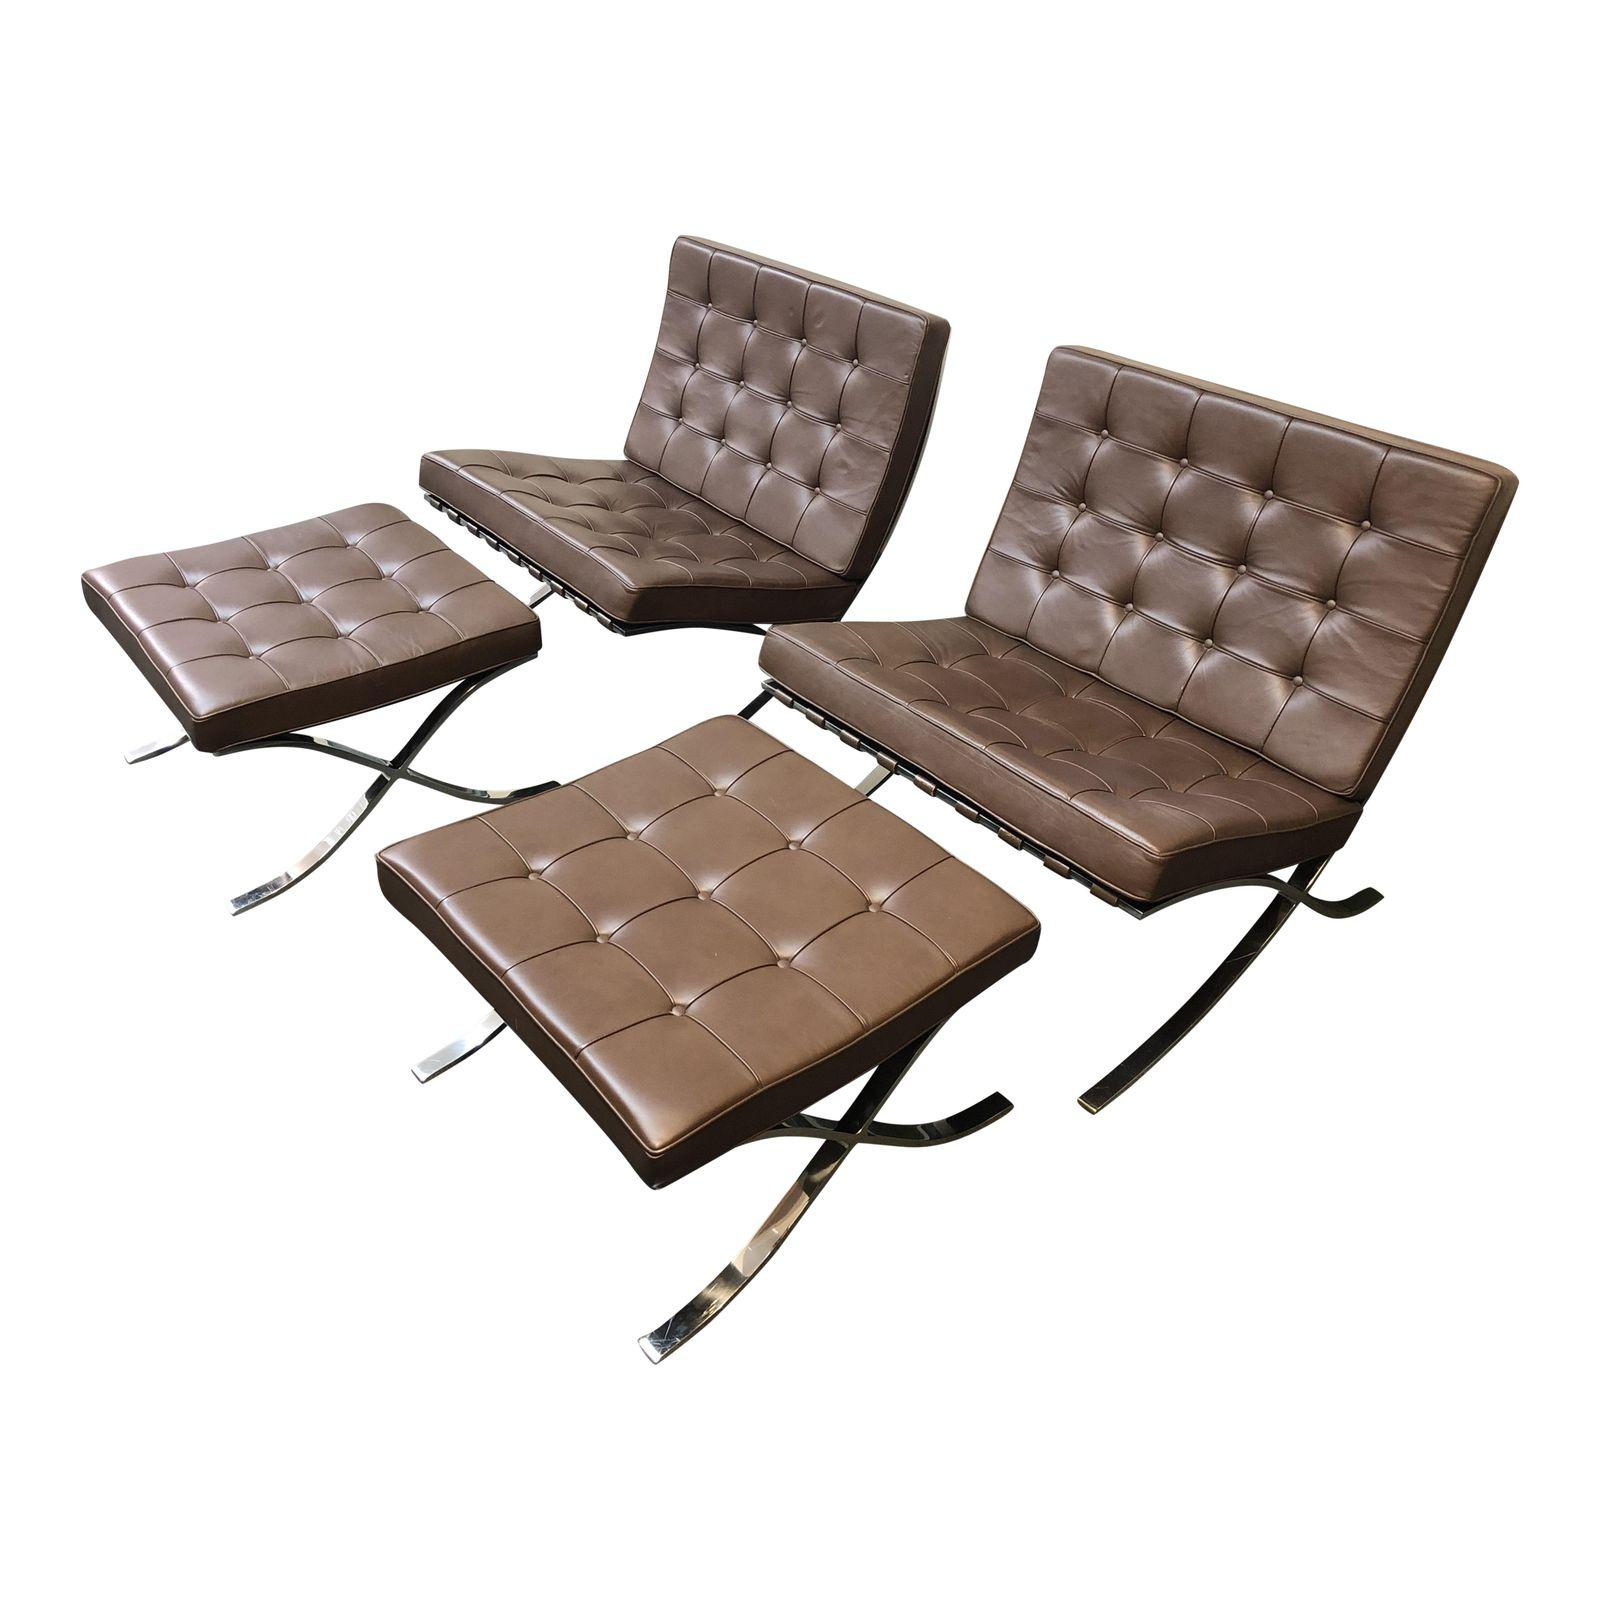 Knoll   Barcelona Chairs U0026 Ottomans   Set Of 4. Original Price: $15,000.00    Design Plus Gallery